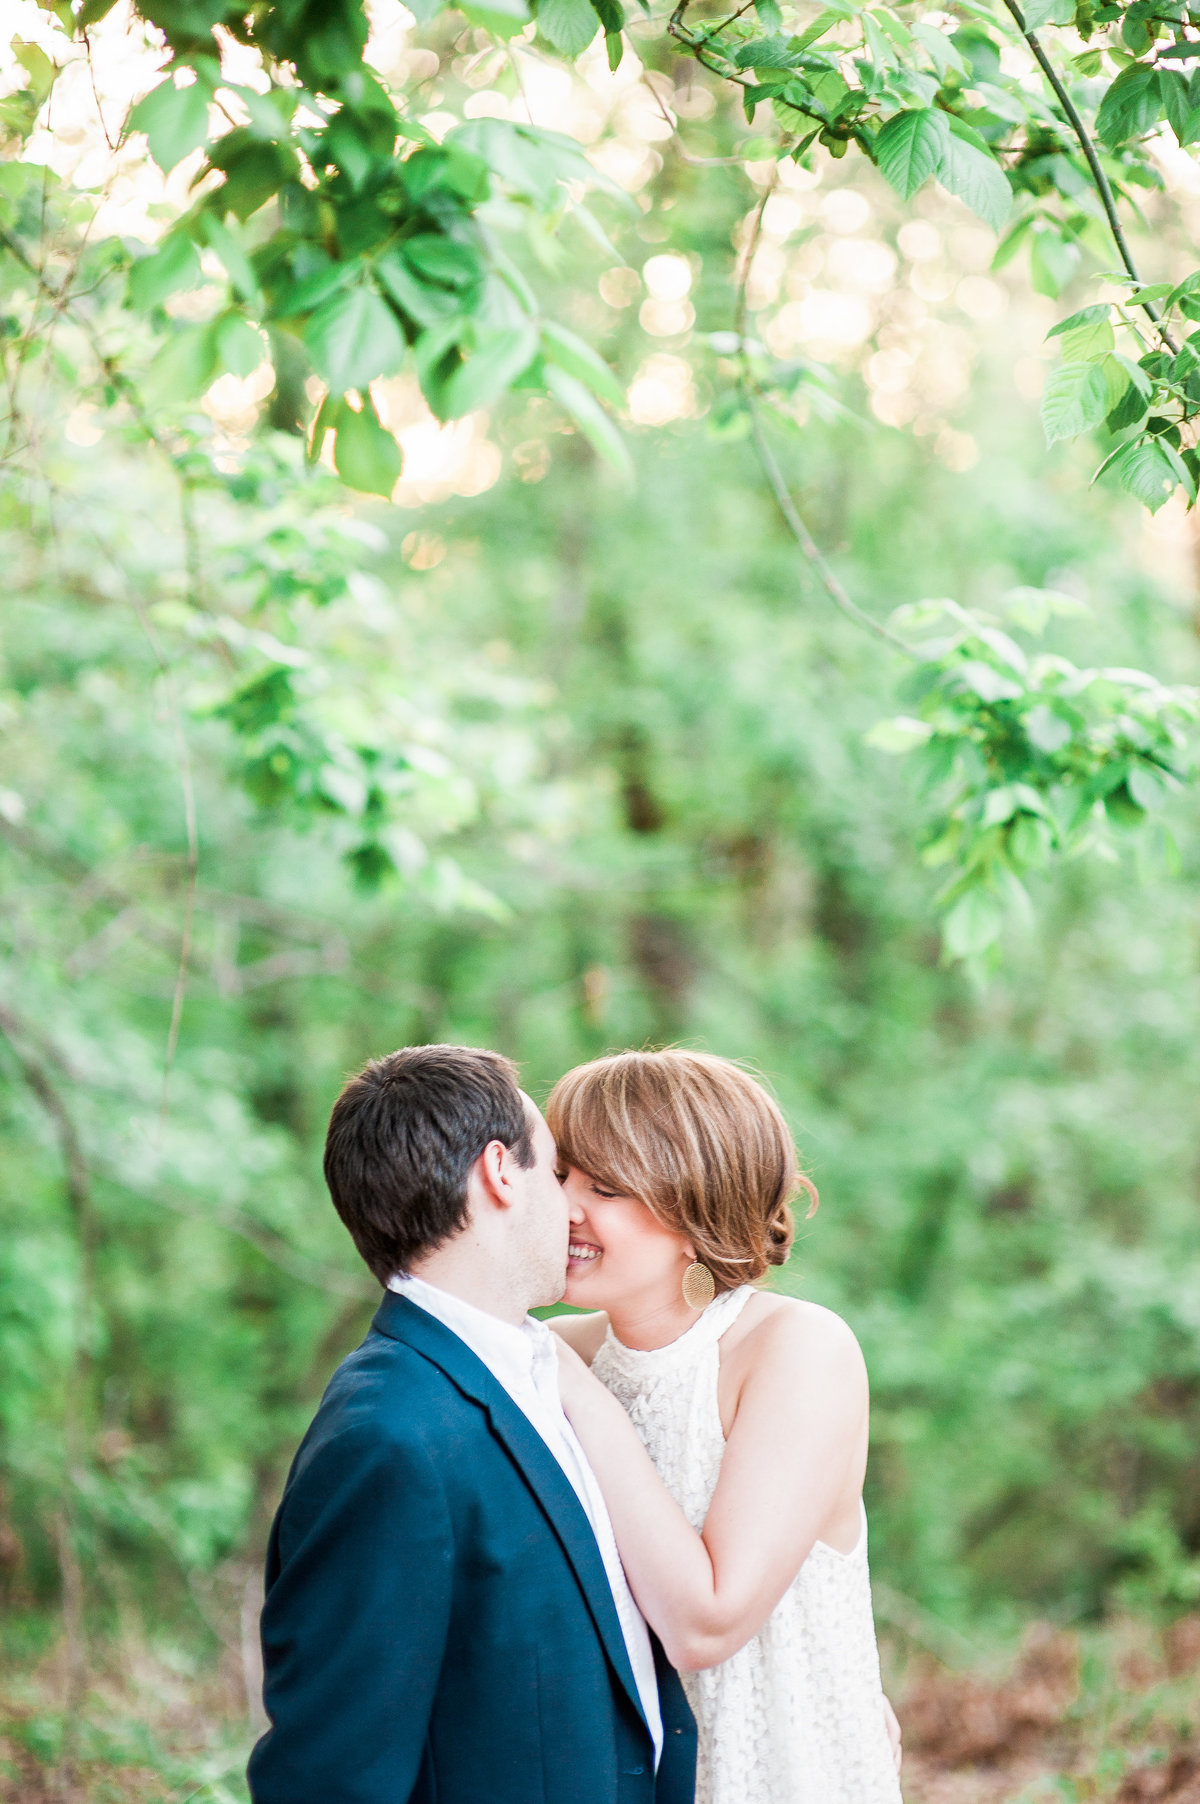 Northwest Arkansas Wedding photographer, bentonville wedding photograper, arkansas bride, arkansas wedding photos, simply bliss photography-11